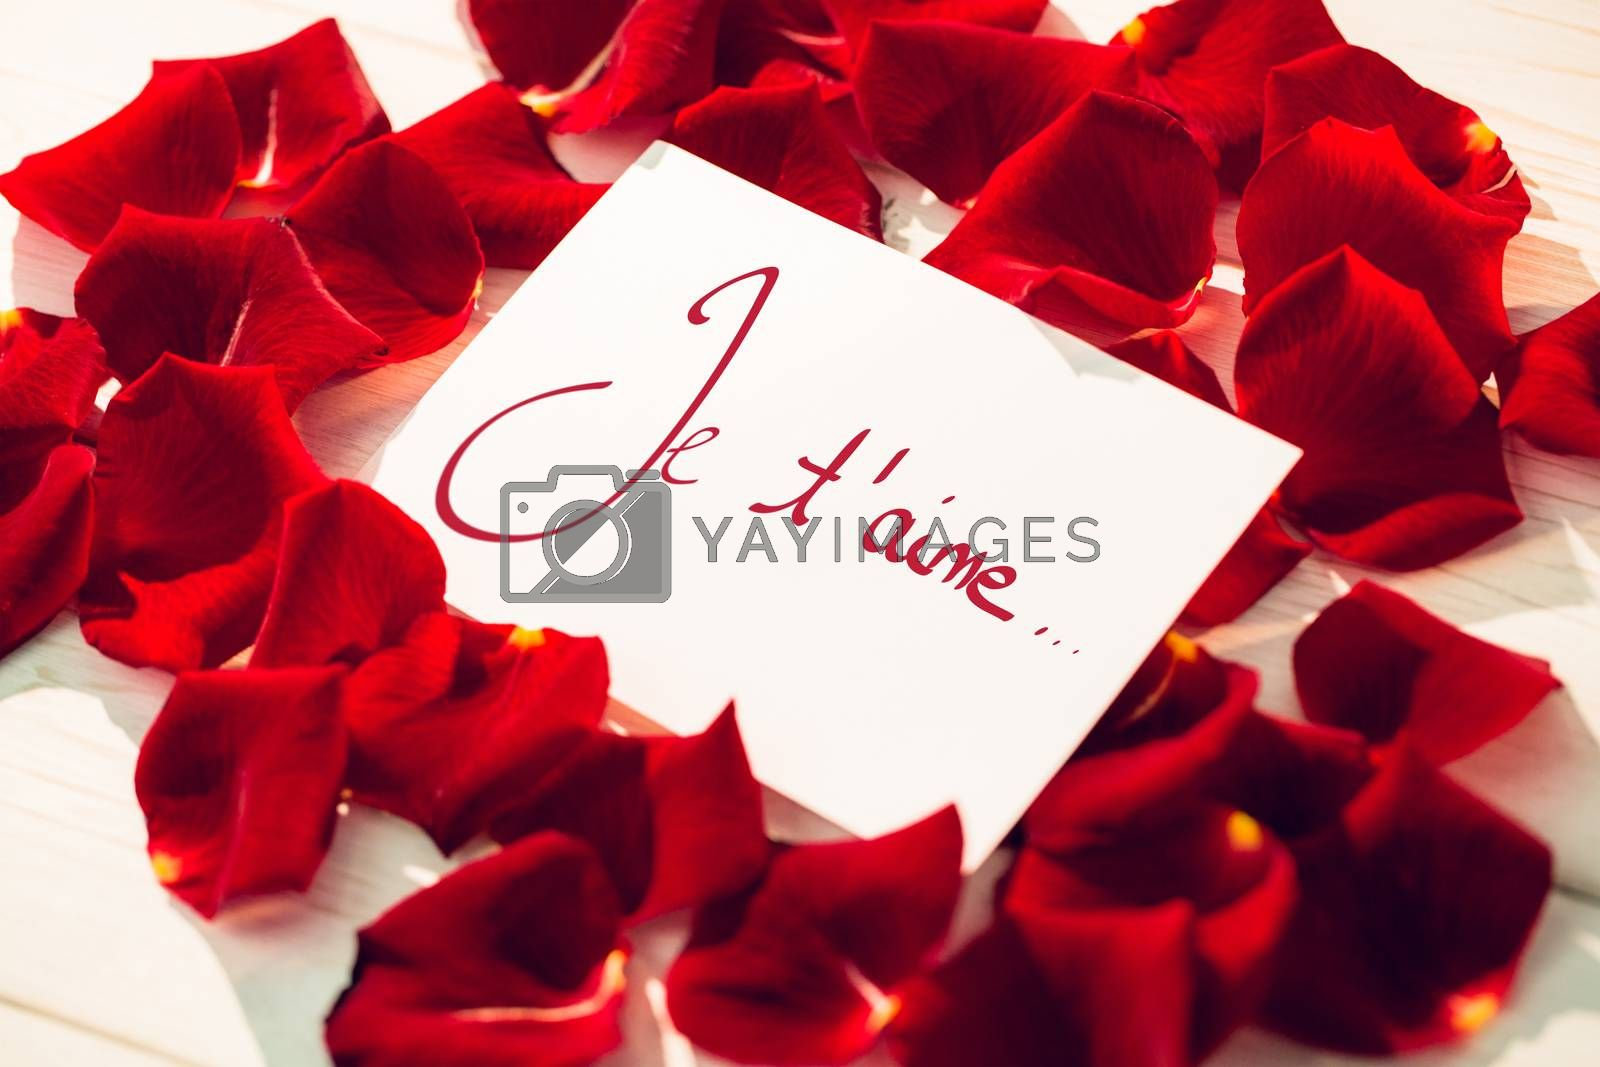 Valentines love hearts against card surrounded by rose petals